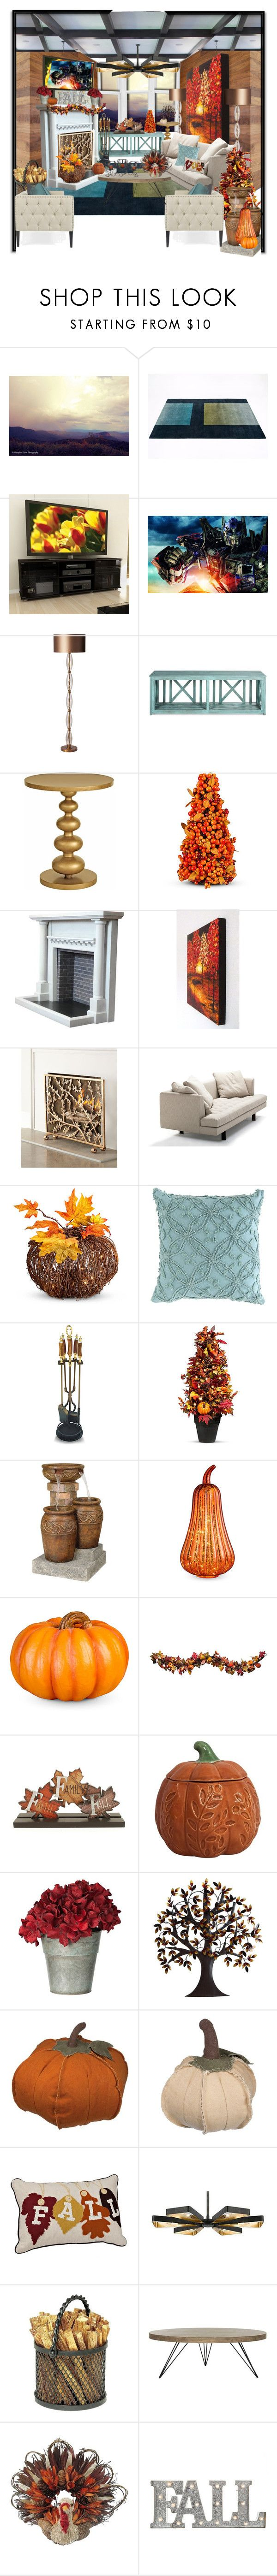 """fall house"" by dixiemartel ❤ liked on Polyvore featuring Umbra, CorLiving, Heathfield & Co., Redford House, Improvements, Bensen, Pine Cone Hill, Vagabond House, Fountain and Bernhardt"